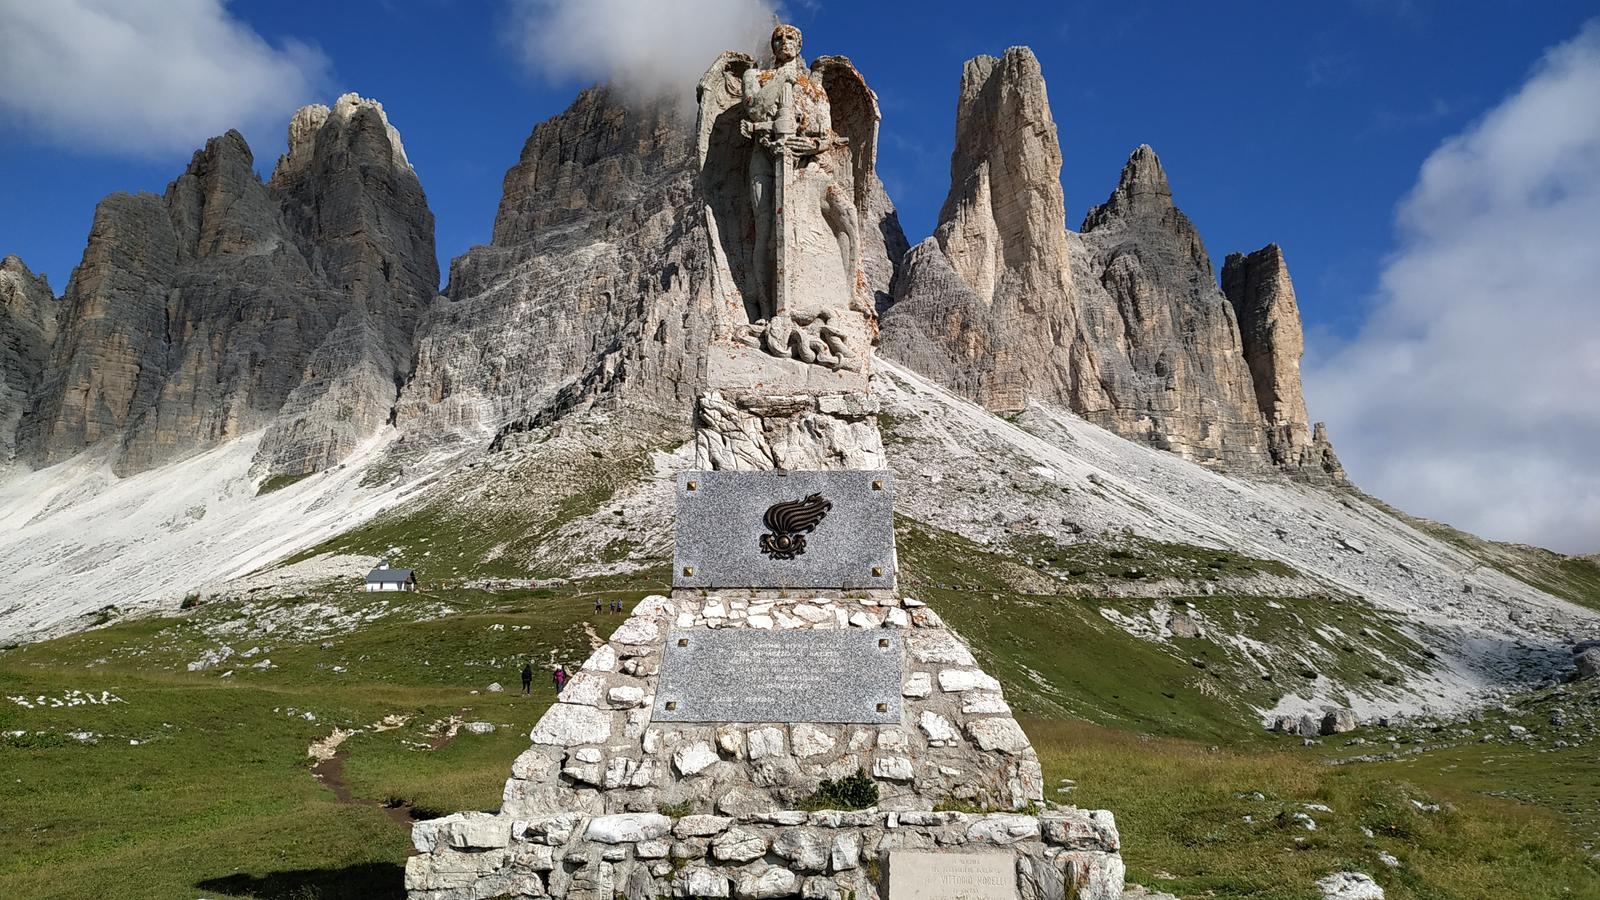 Photo of Rifugi Auronzo,Lavaredo, Pian di Cengia e Locatelli. Anello dalle Tre Cime di Lavaredo